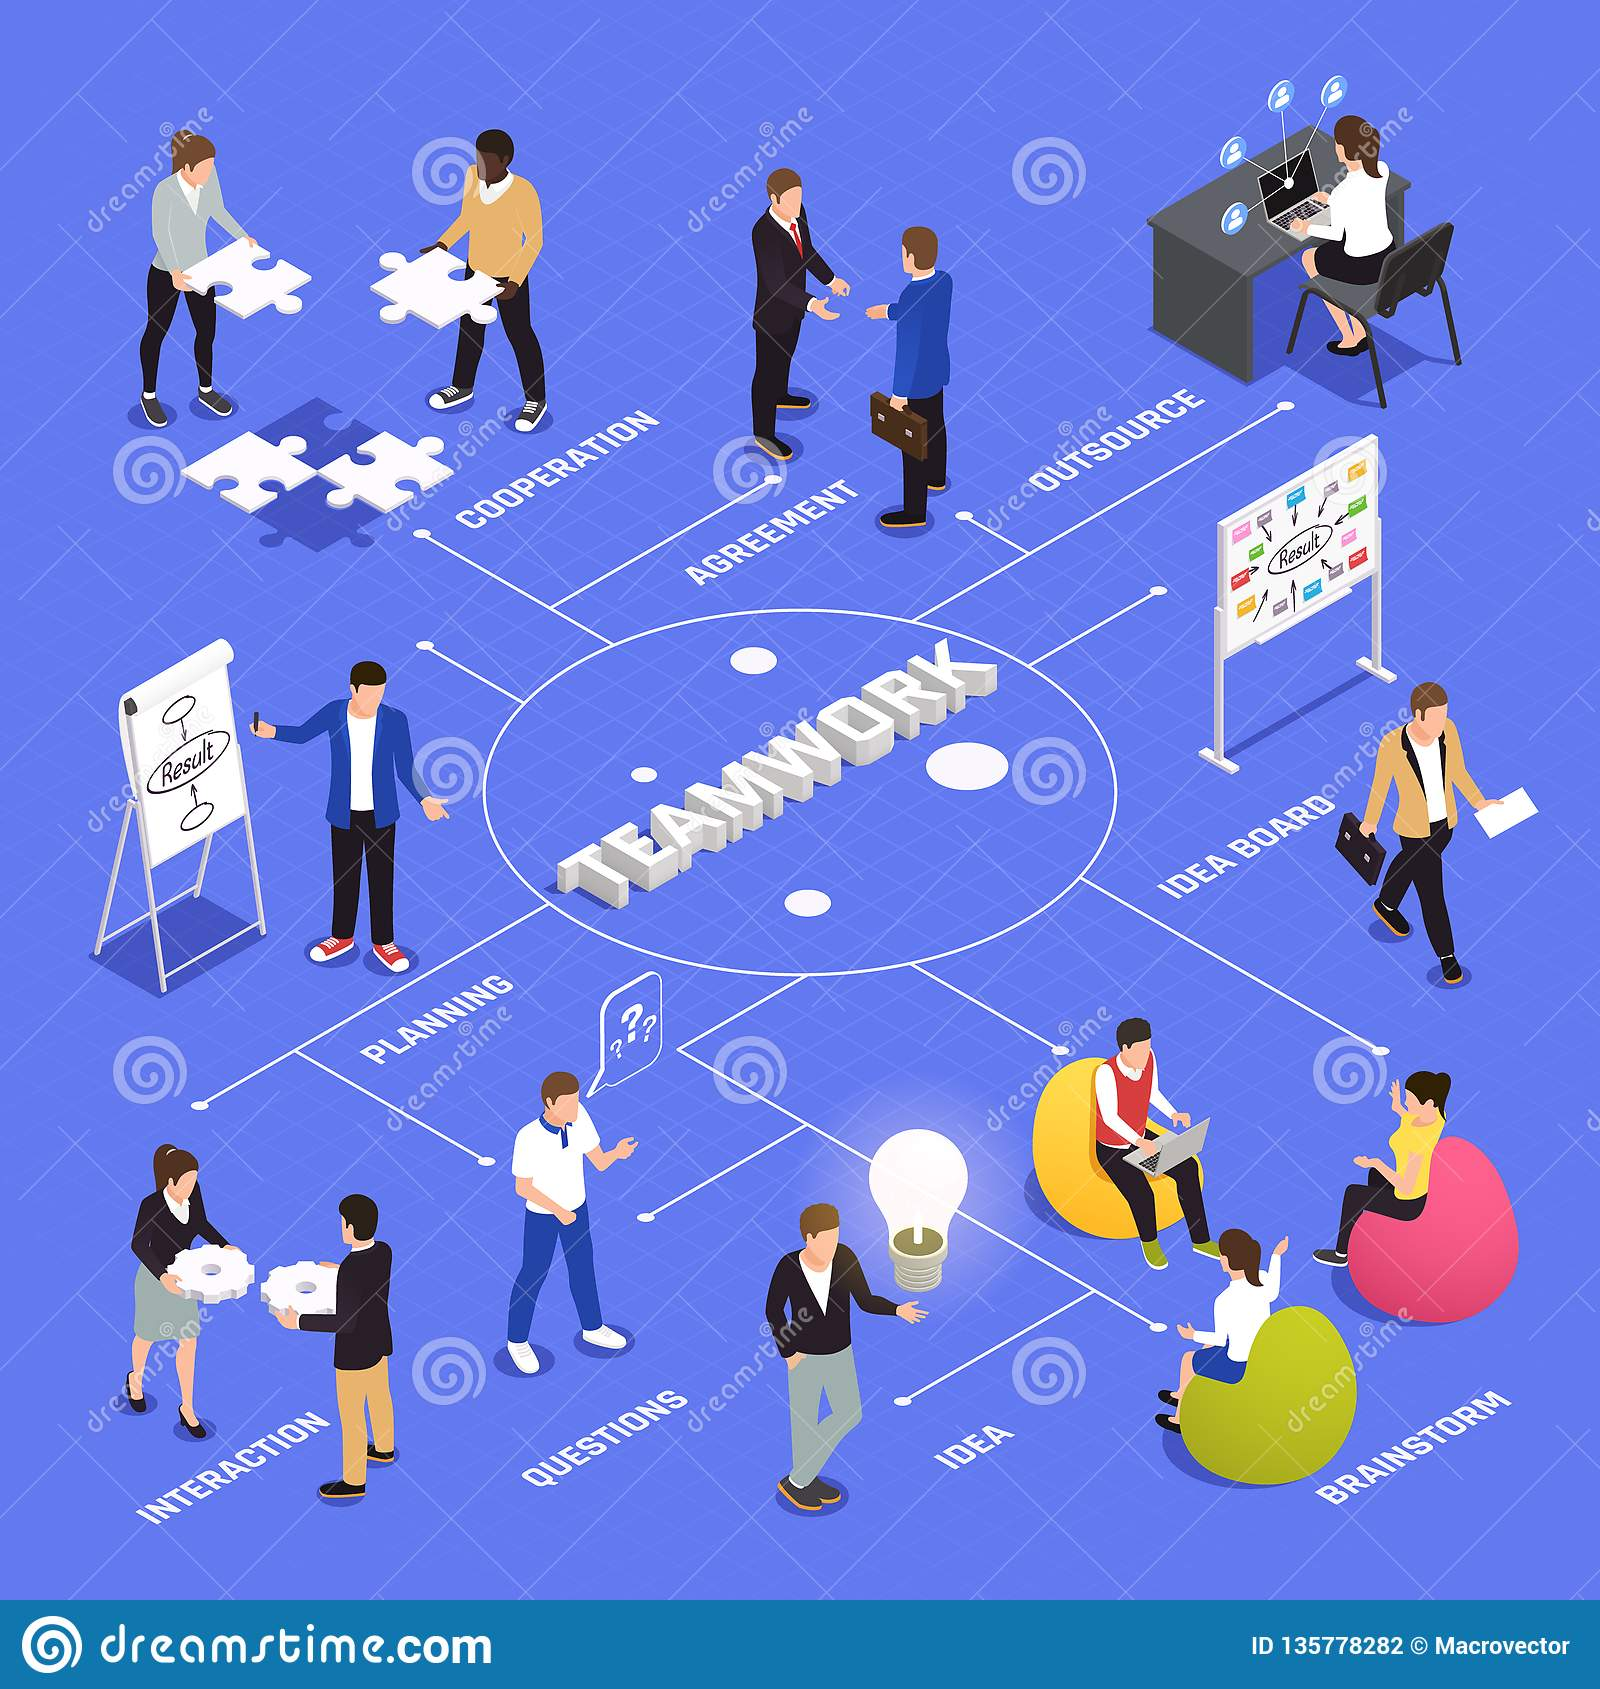 Teamwork Collaboration Isometric Flowchart